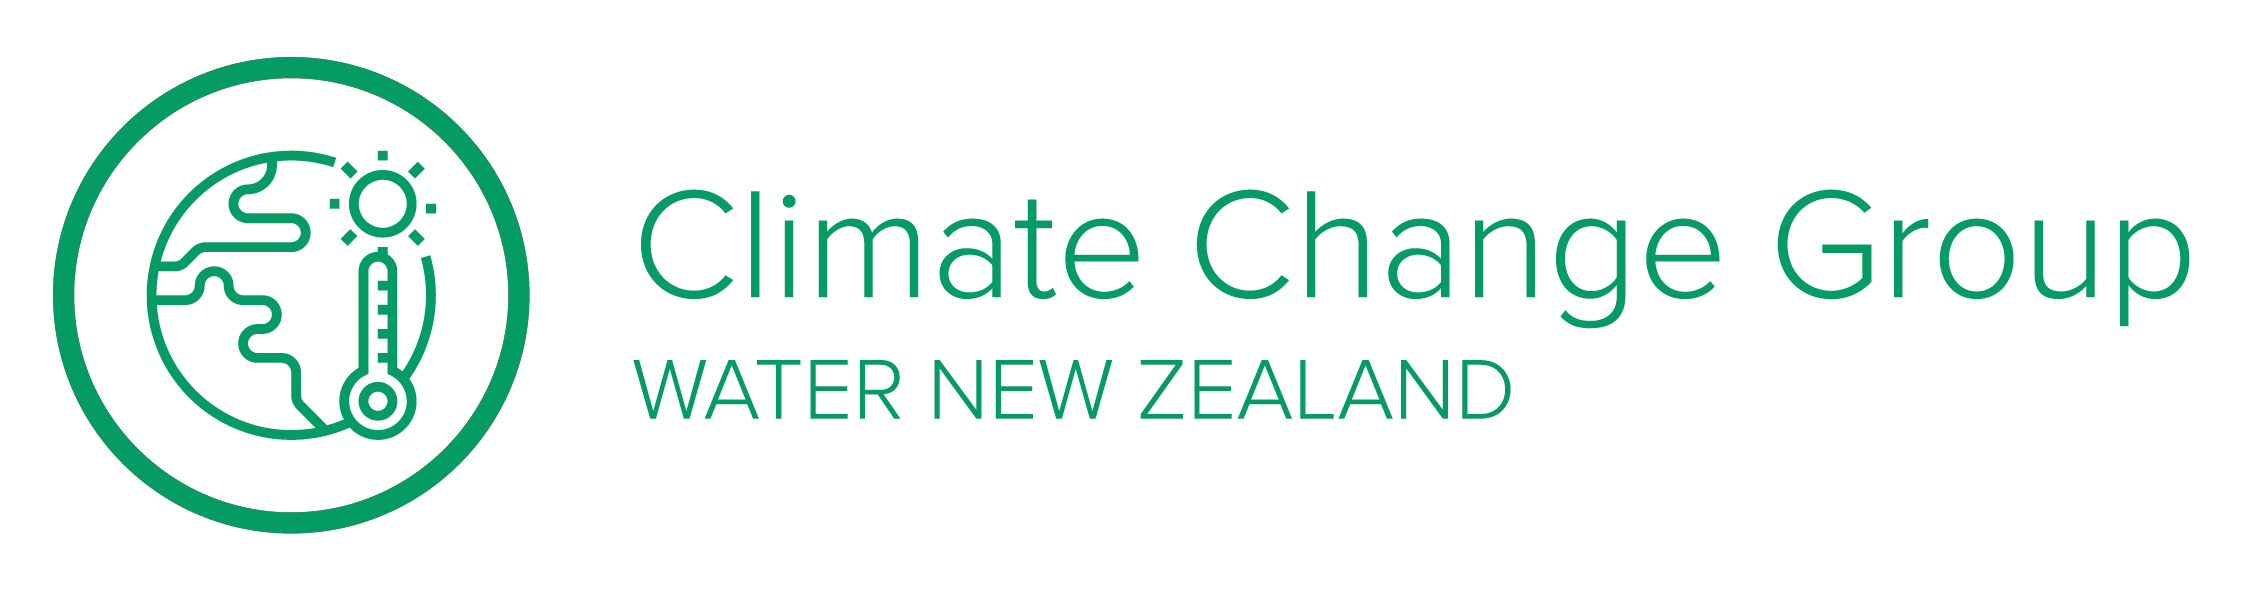 Climate change group logo